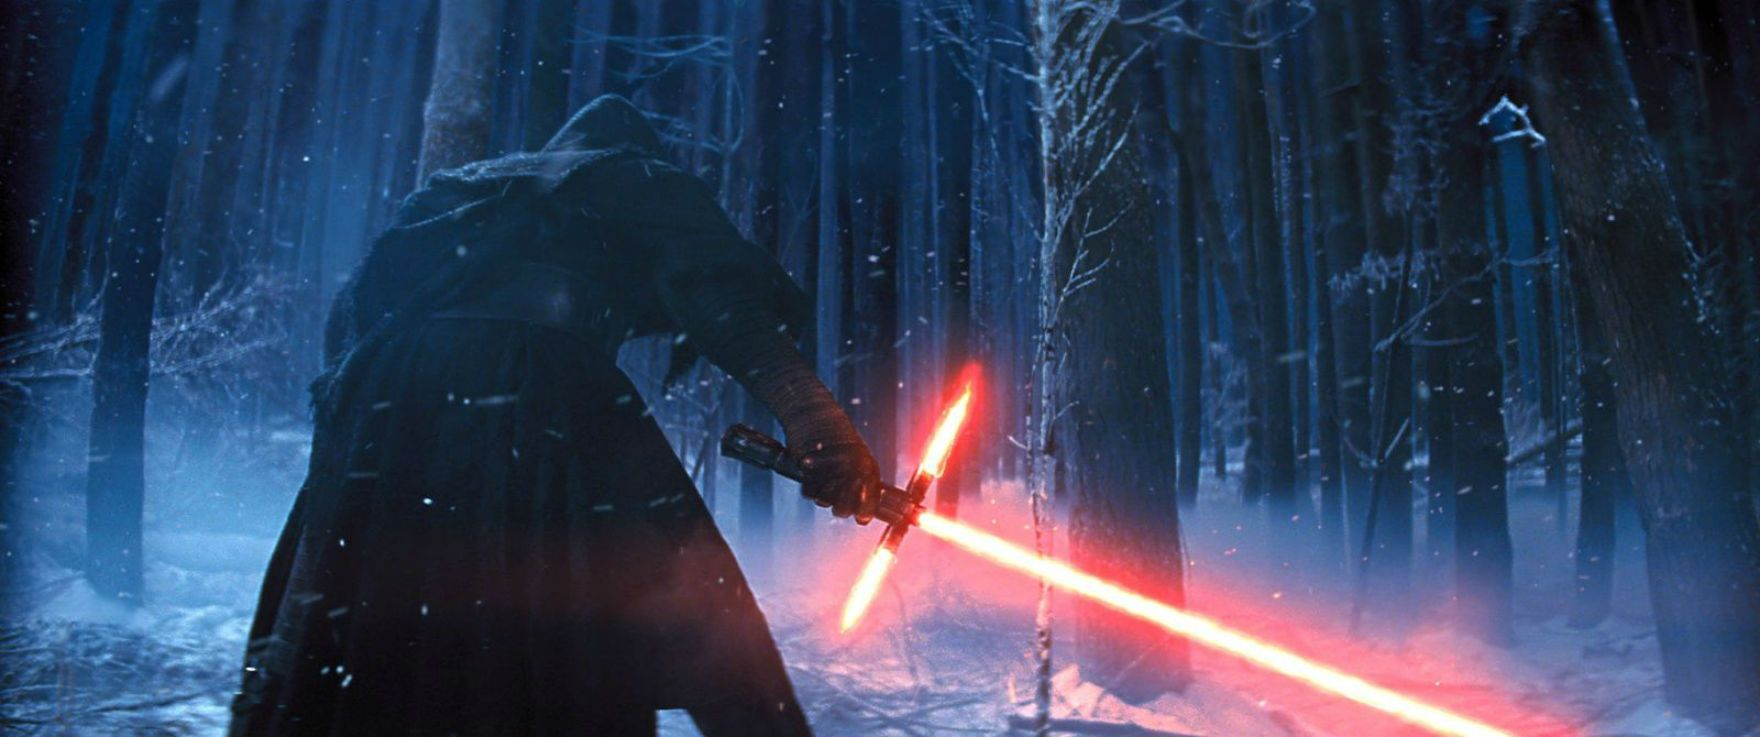 10 Reasons The Next Star Wars Movie Will Break Box Office Records